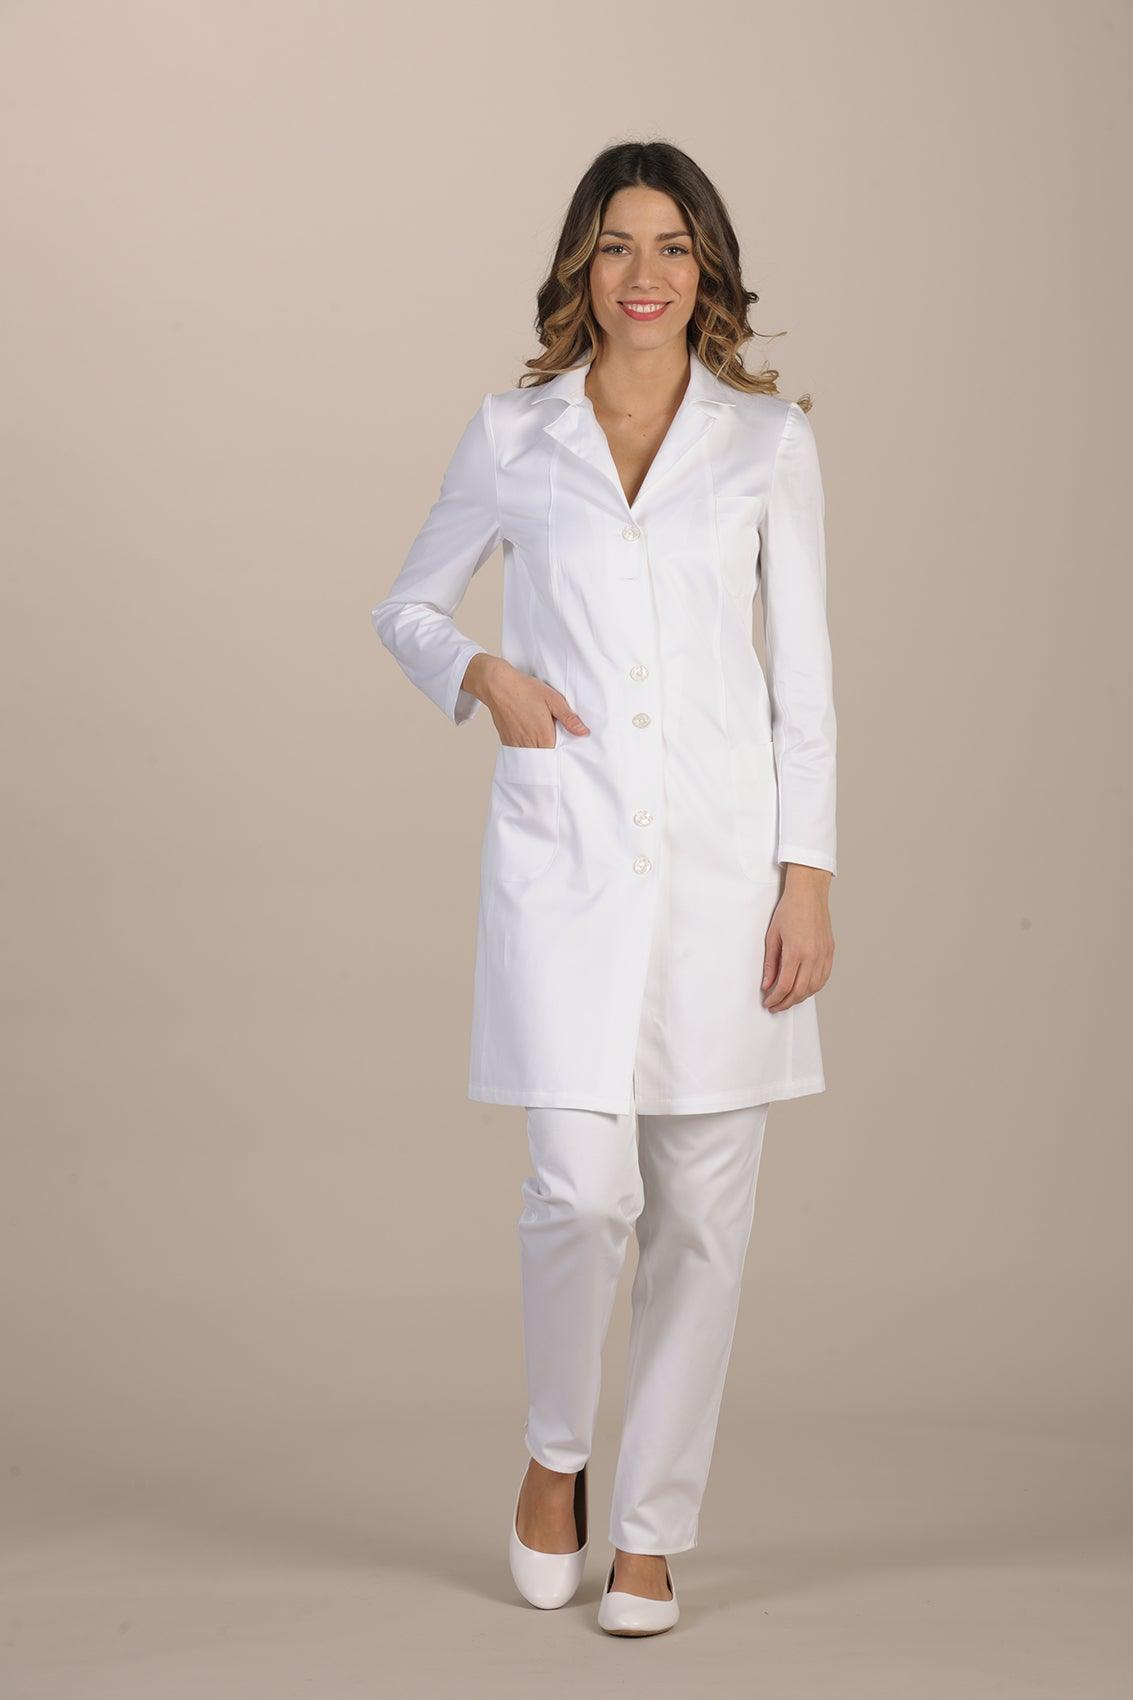 Erevan Women's Lab Coat